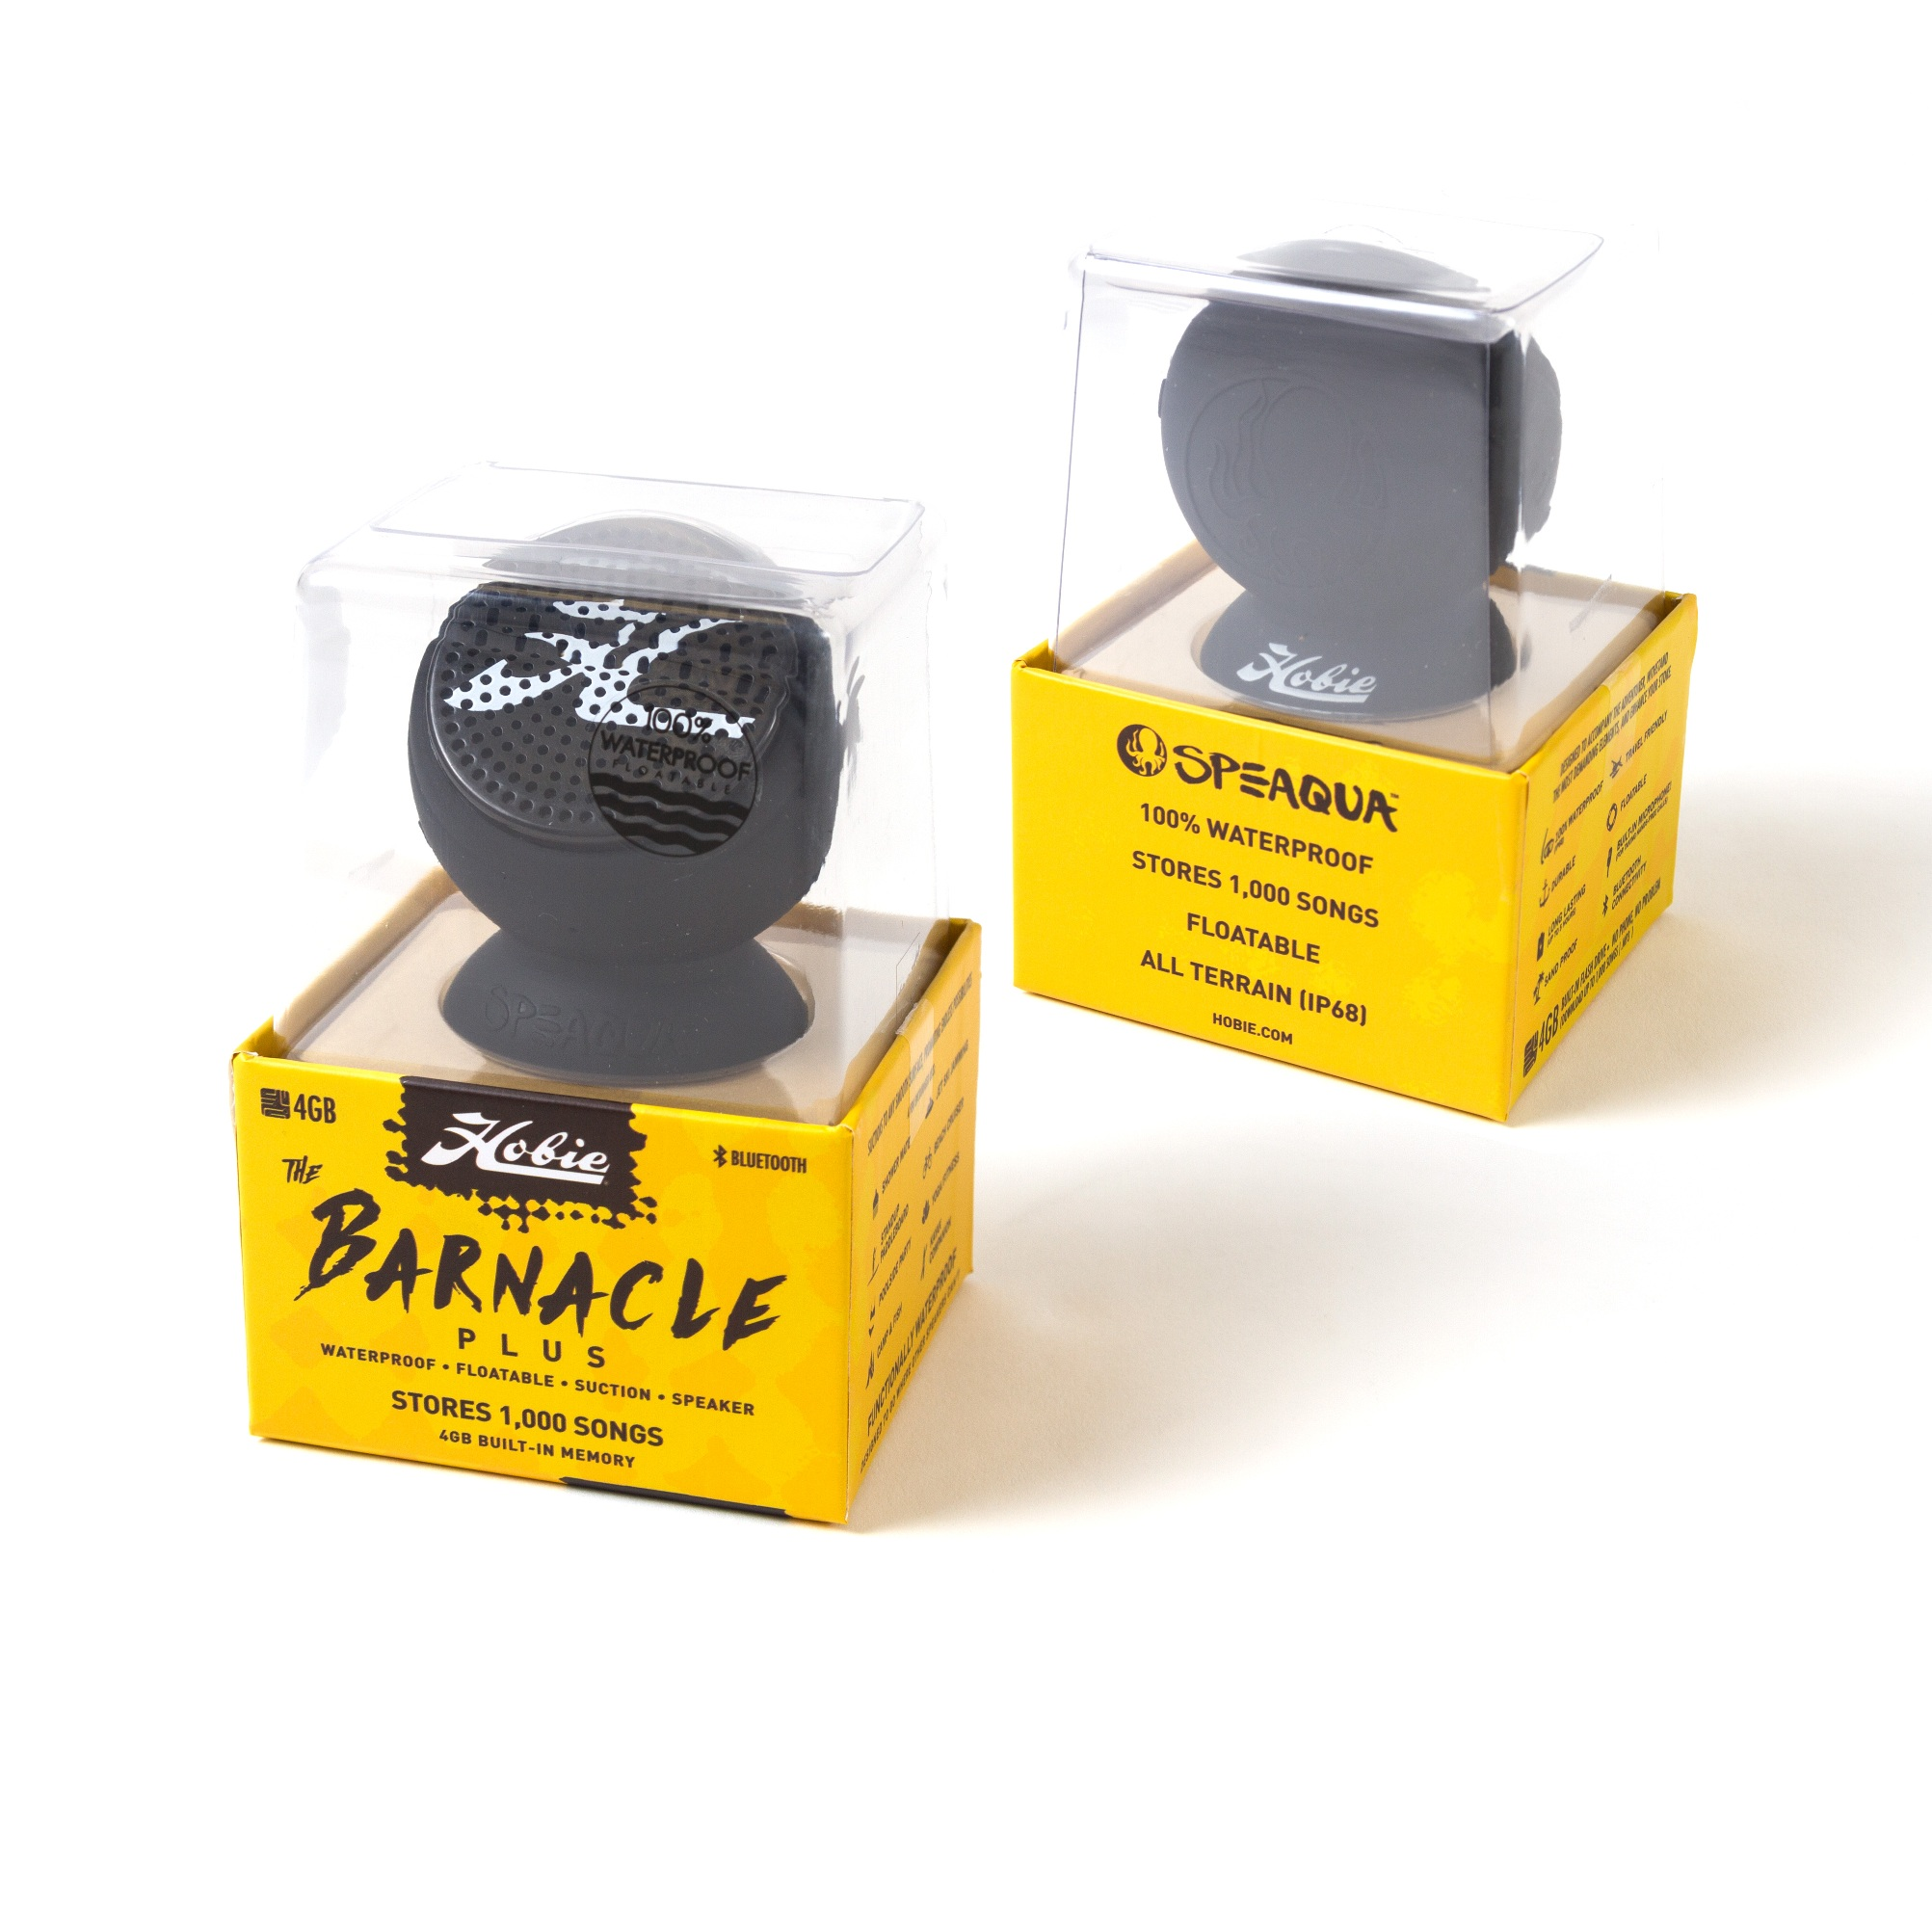 Barnacle Plus Speaker